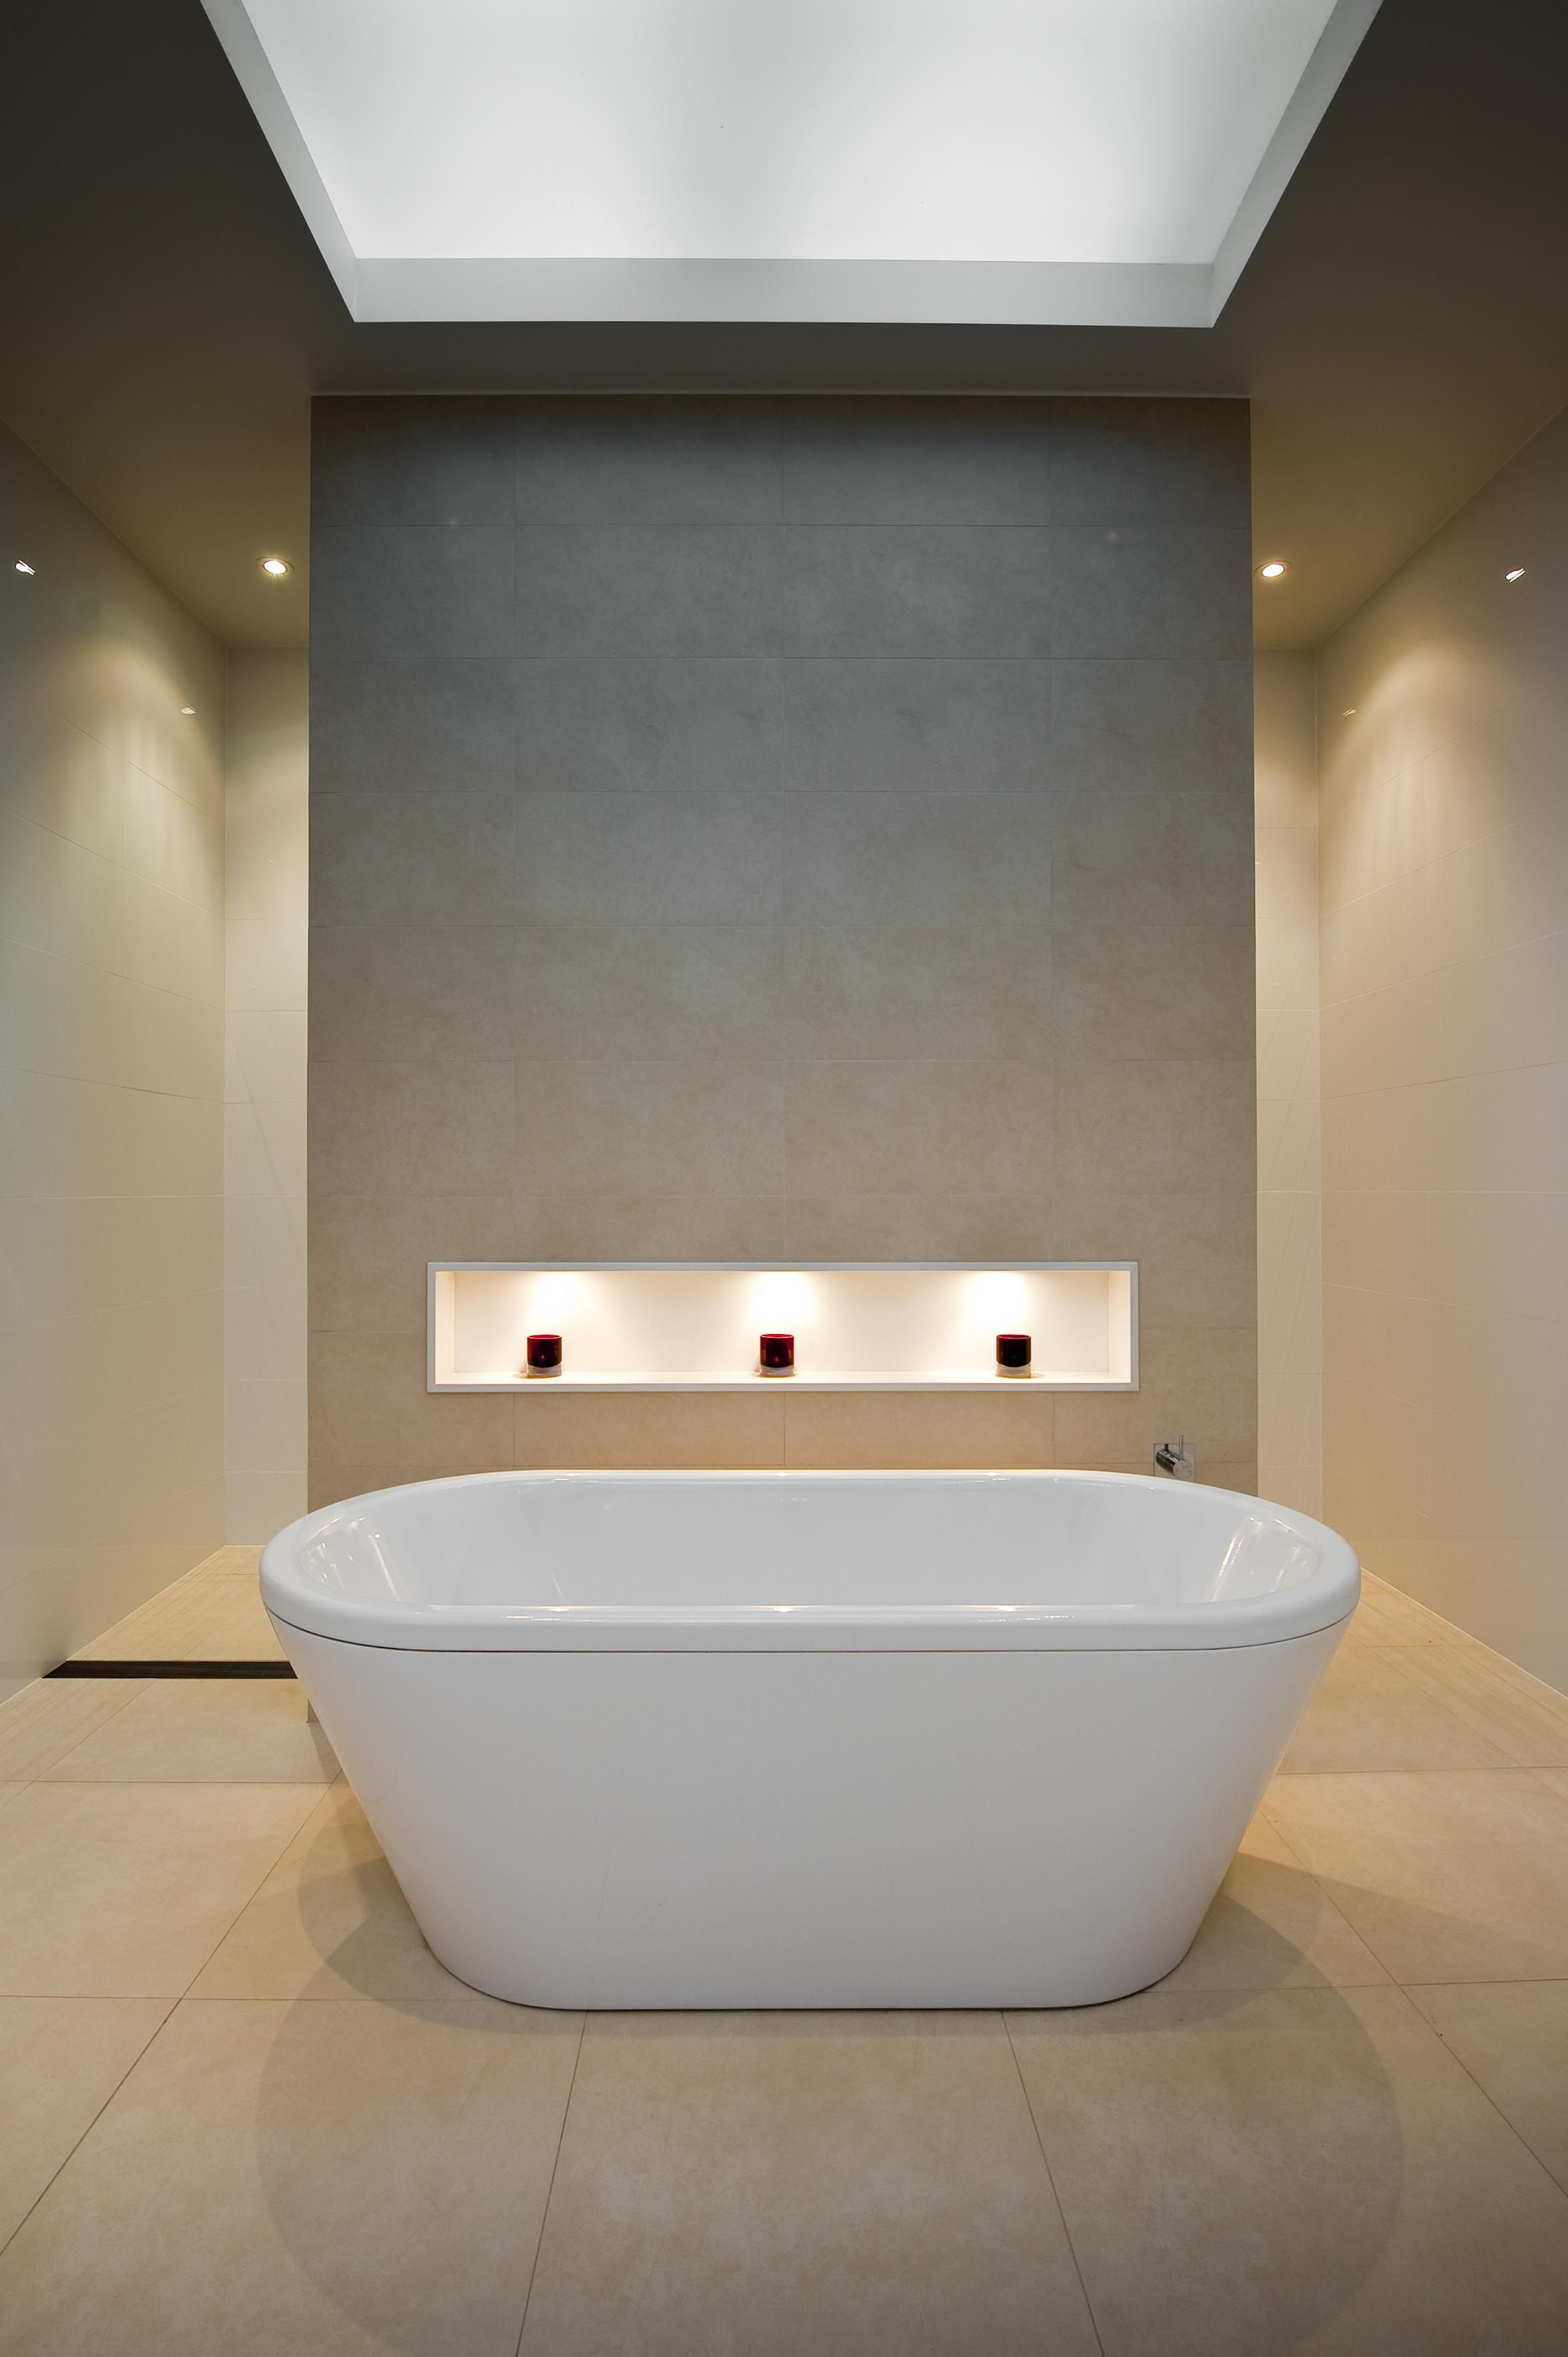 of photo rain best the size outside shower waterfall mounted bathtub ideal heads wall mount valve full with headsshower concept jchansdesigns diverter decoras jets head formidable in